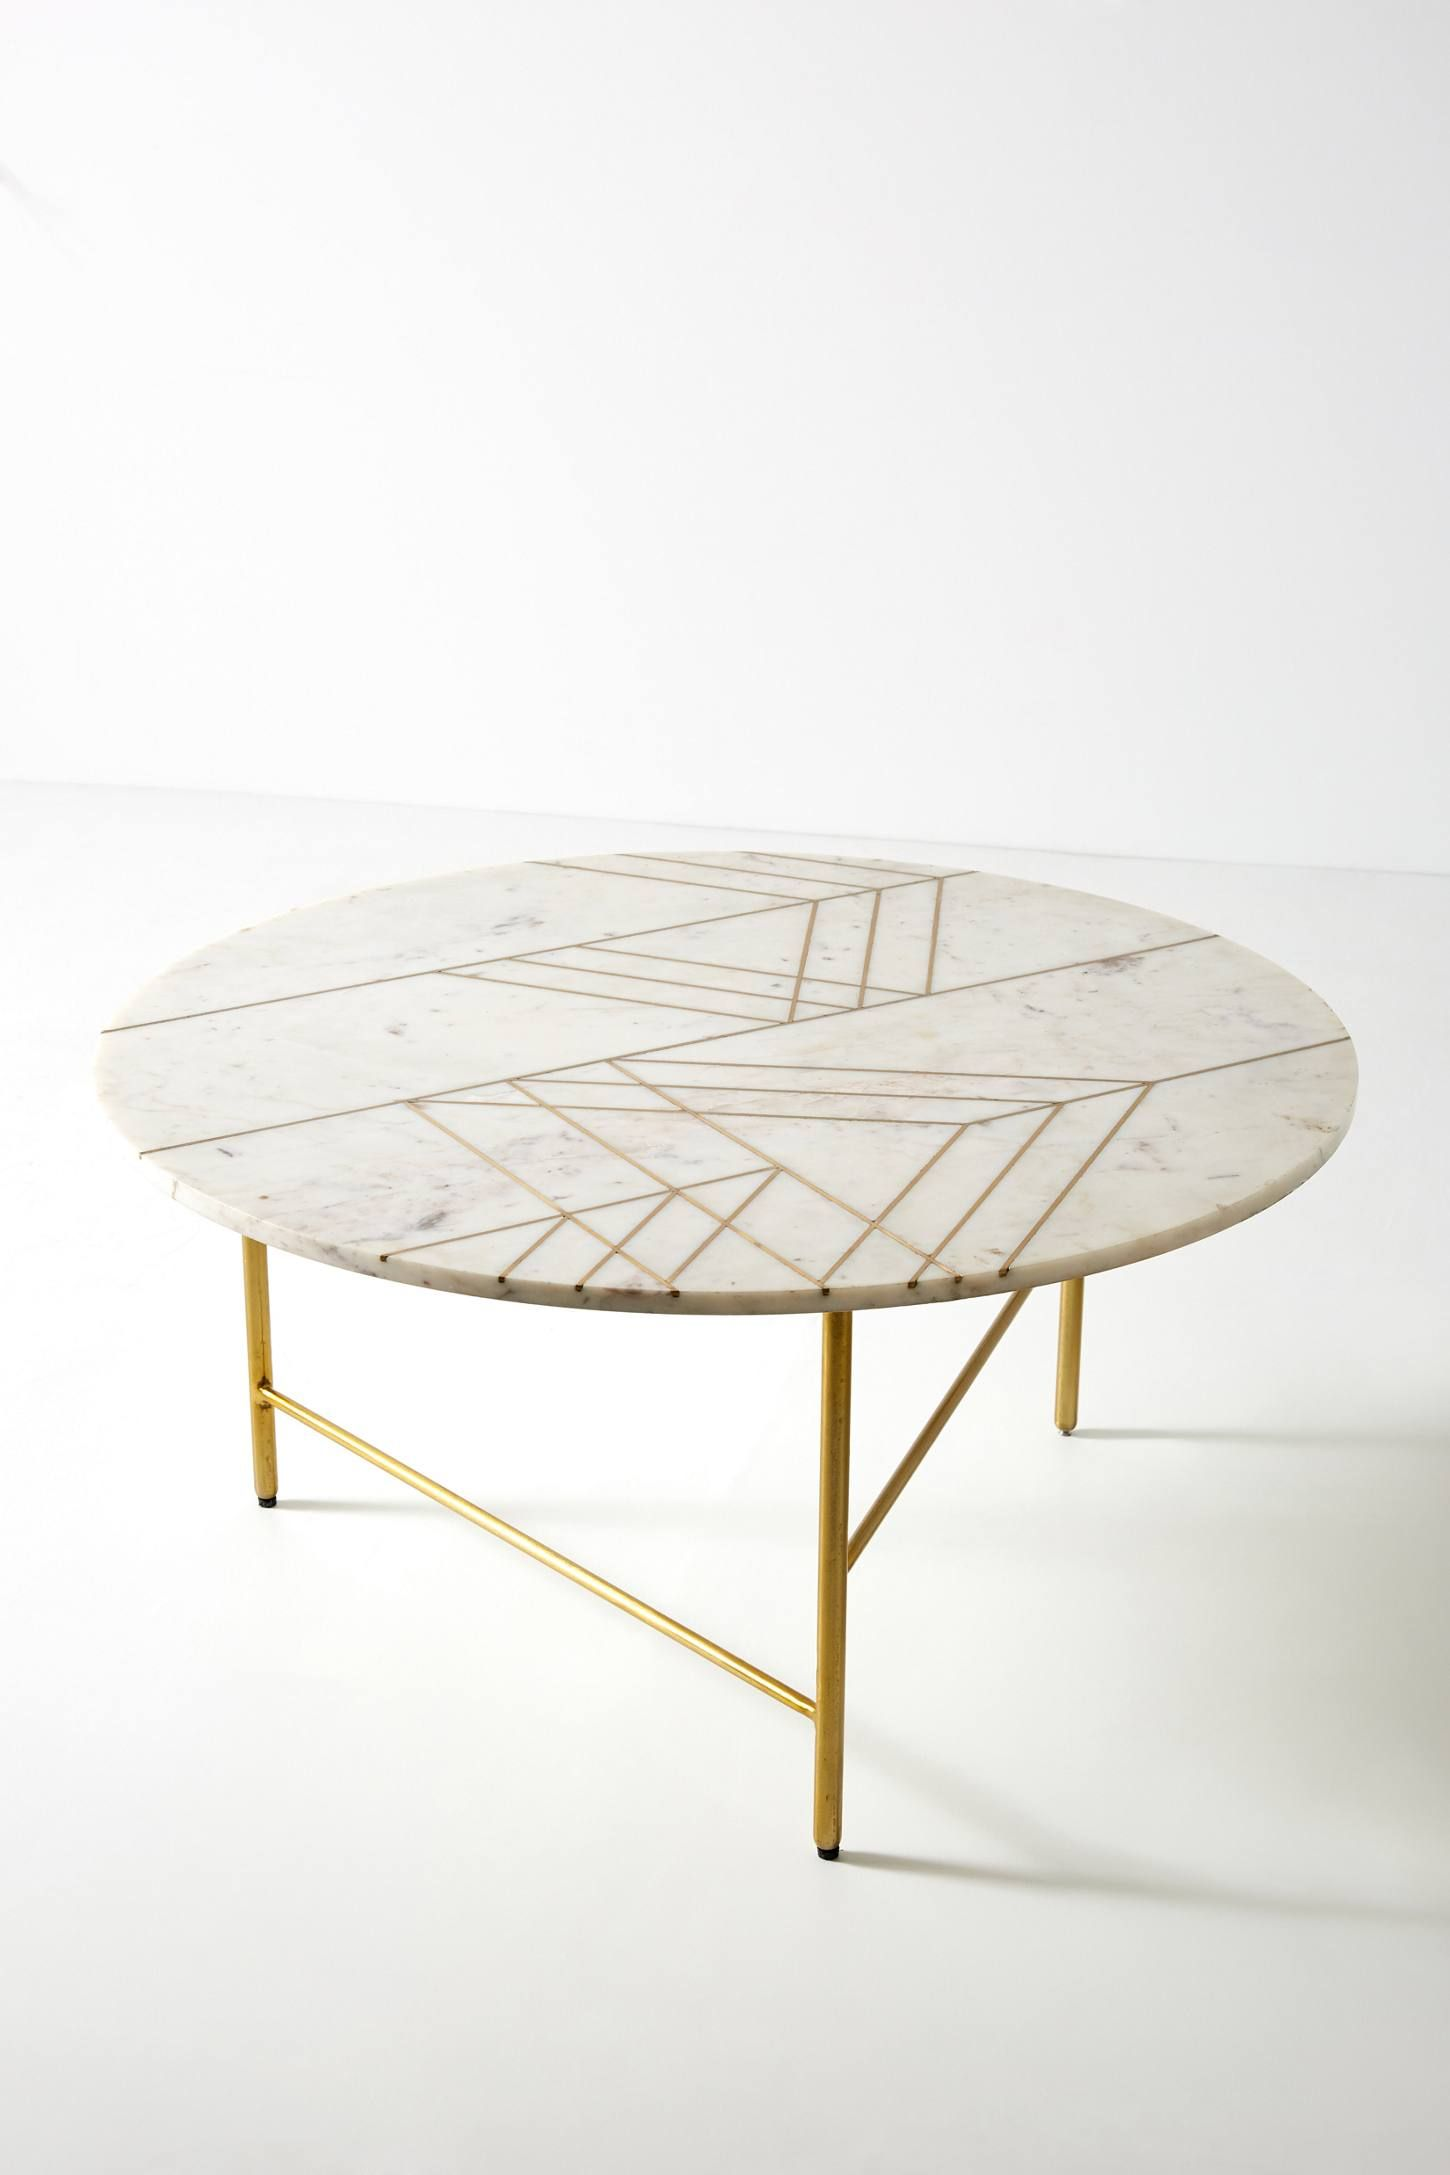 Pieced Marble Coffee Table Marble Coffee Table Coffee Table Marble Round Coffee Table [ 2175 x 1450 Pixel ]